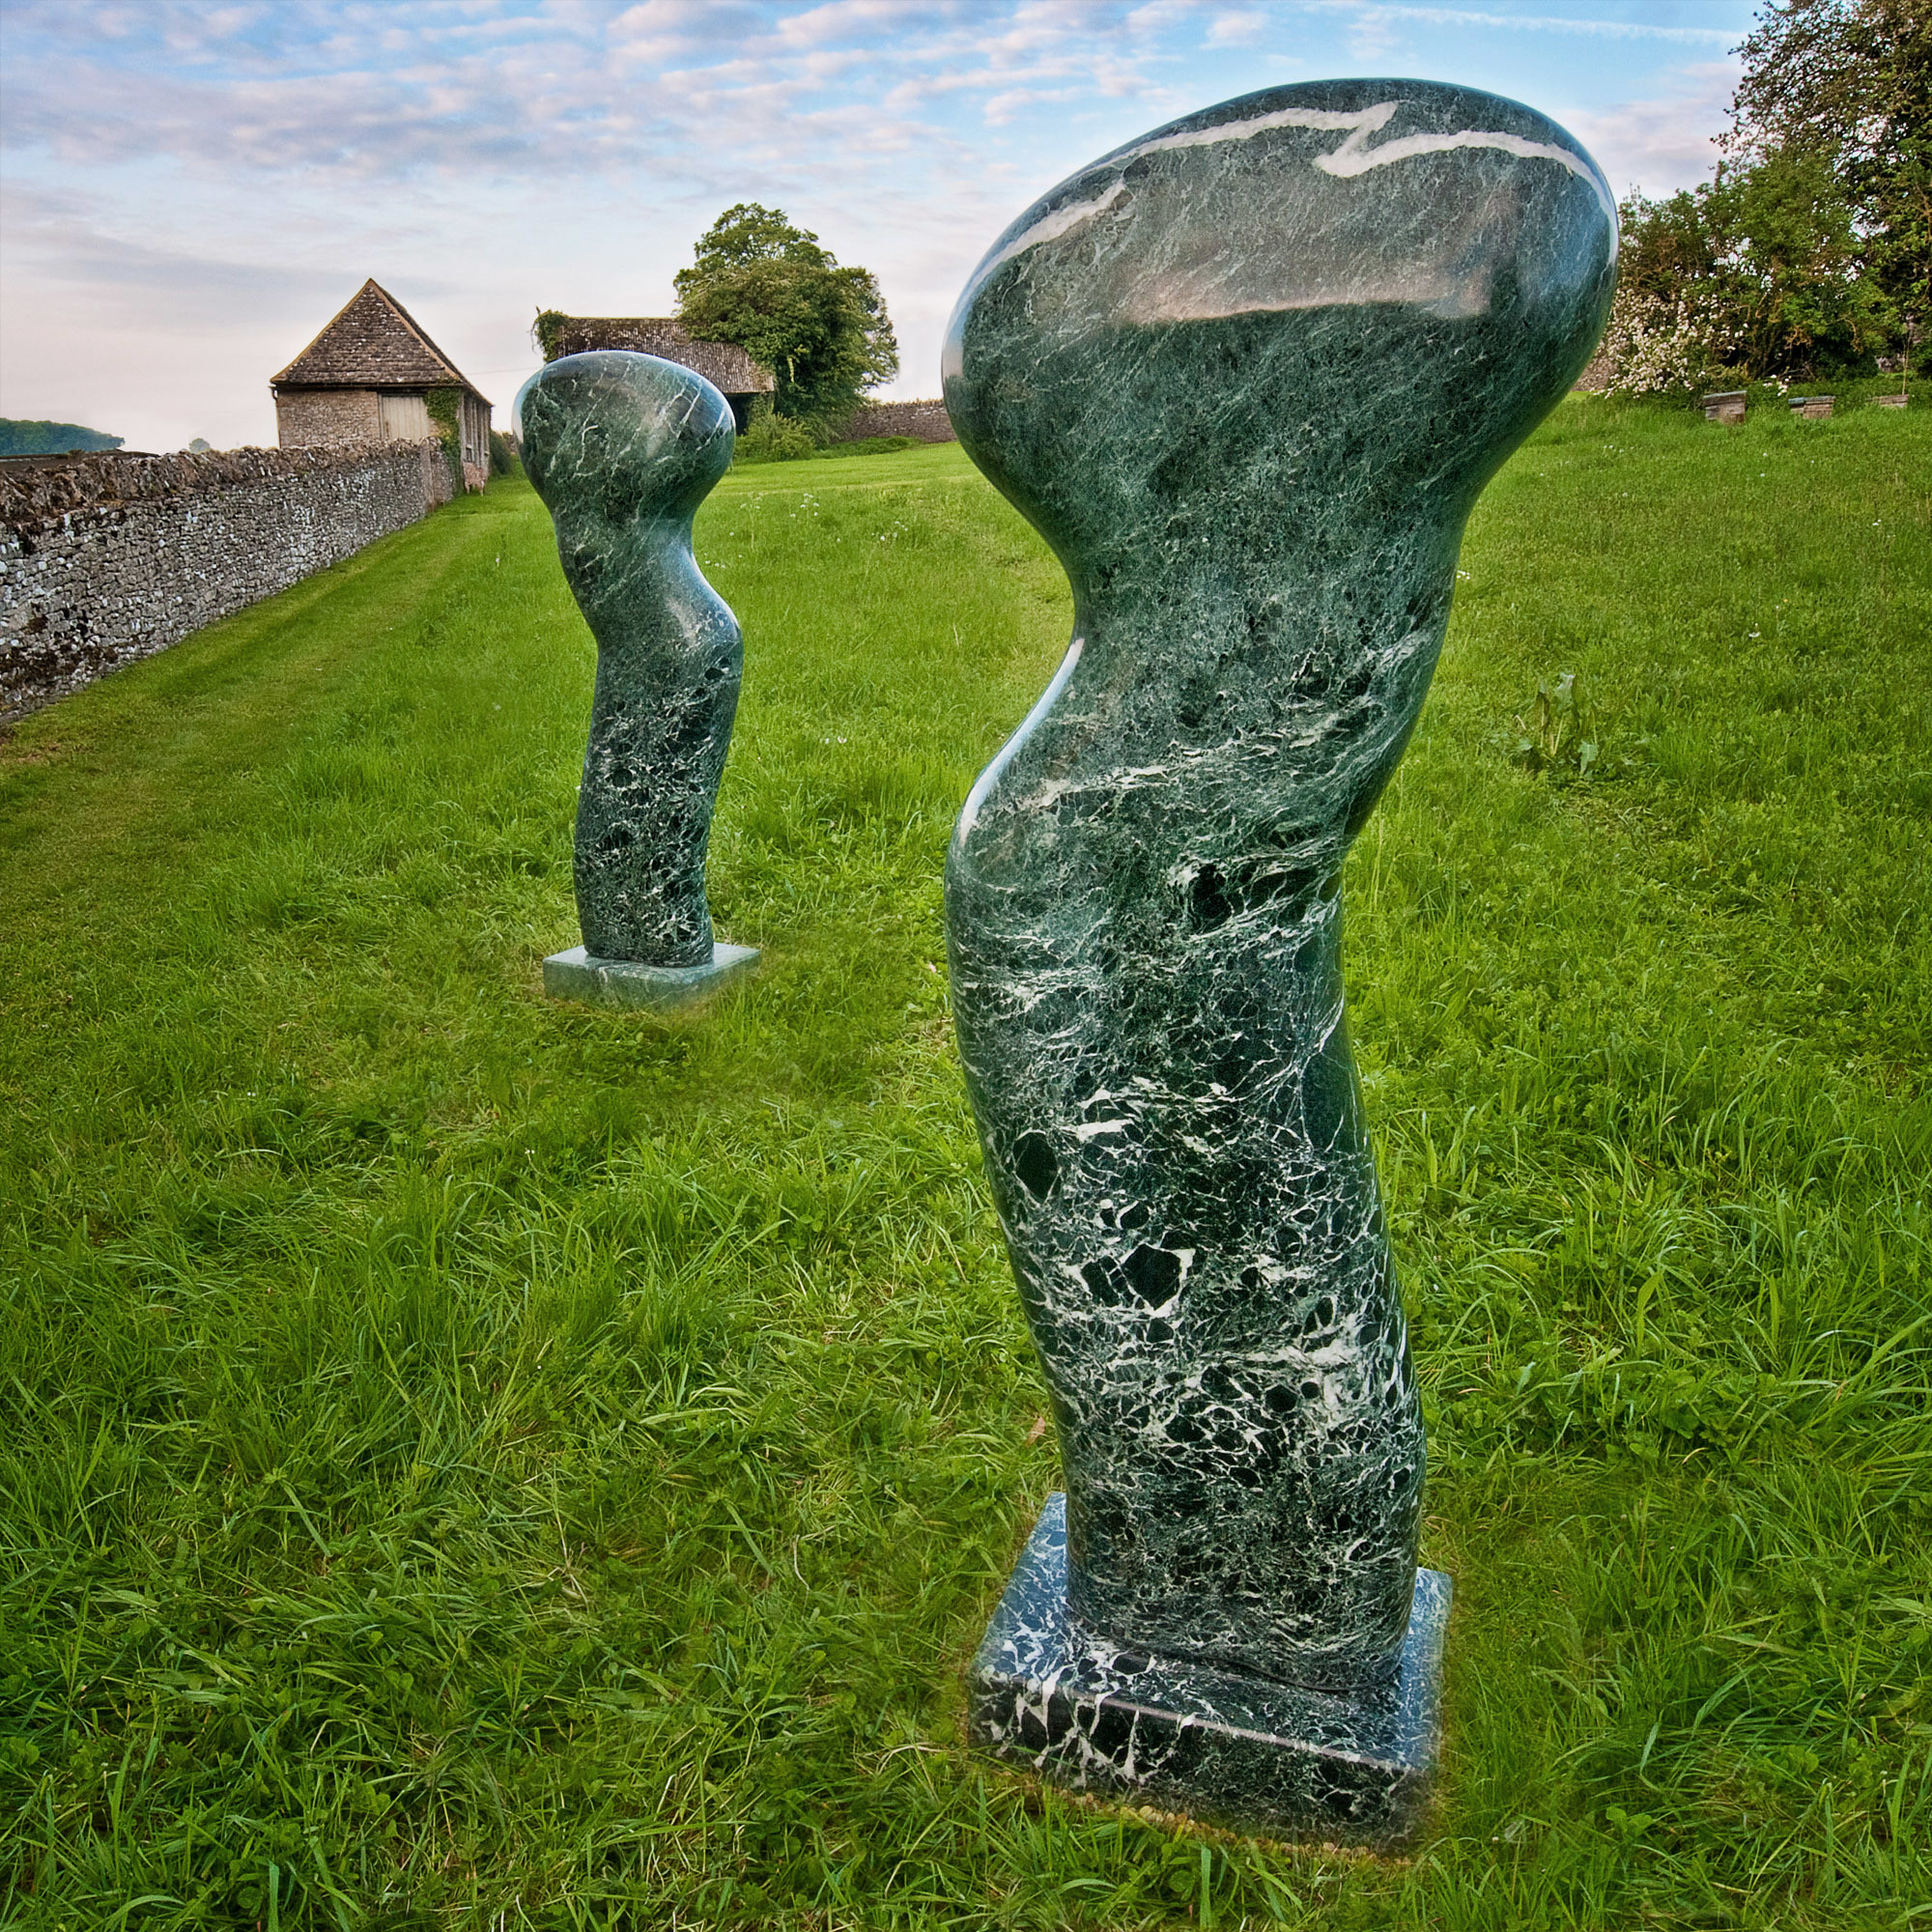 Paul Vanstone – Green water torso (left) and Green river torso (right) image